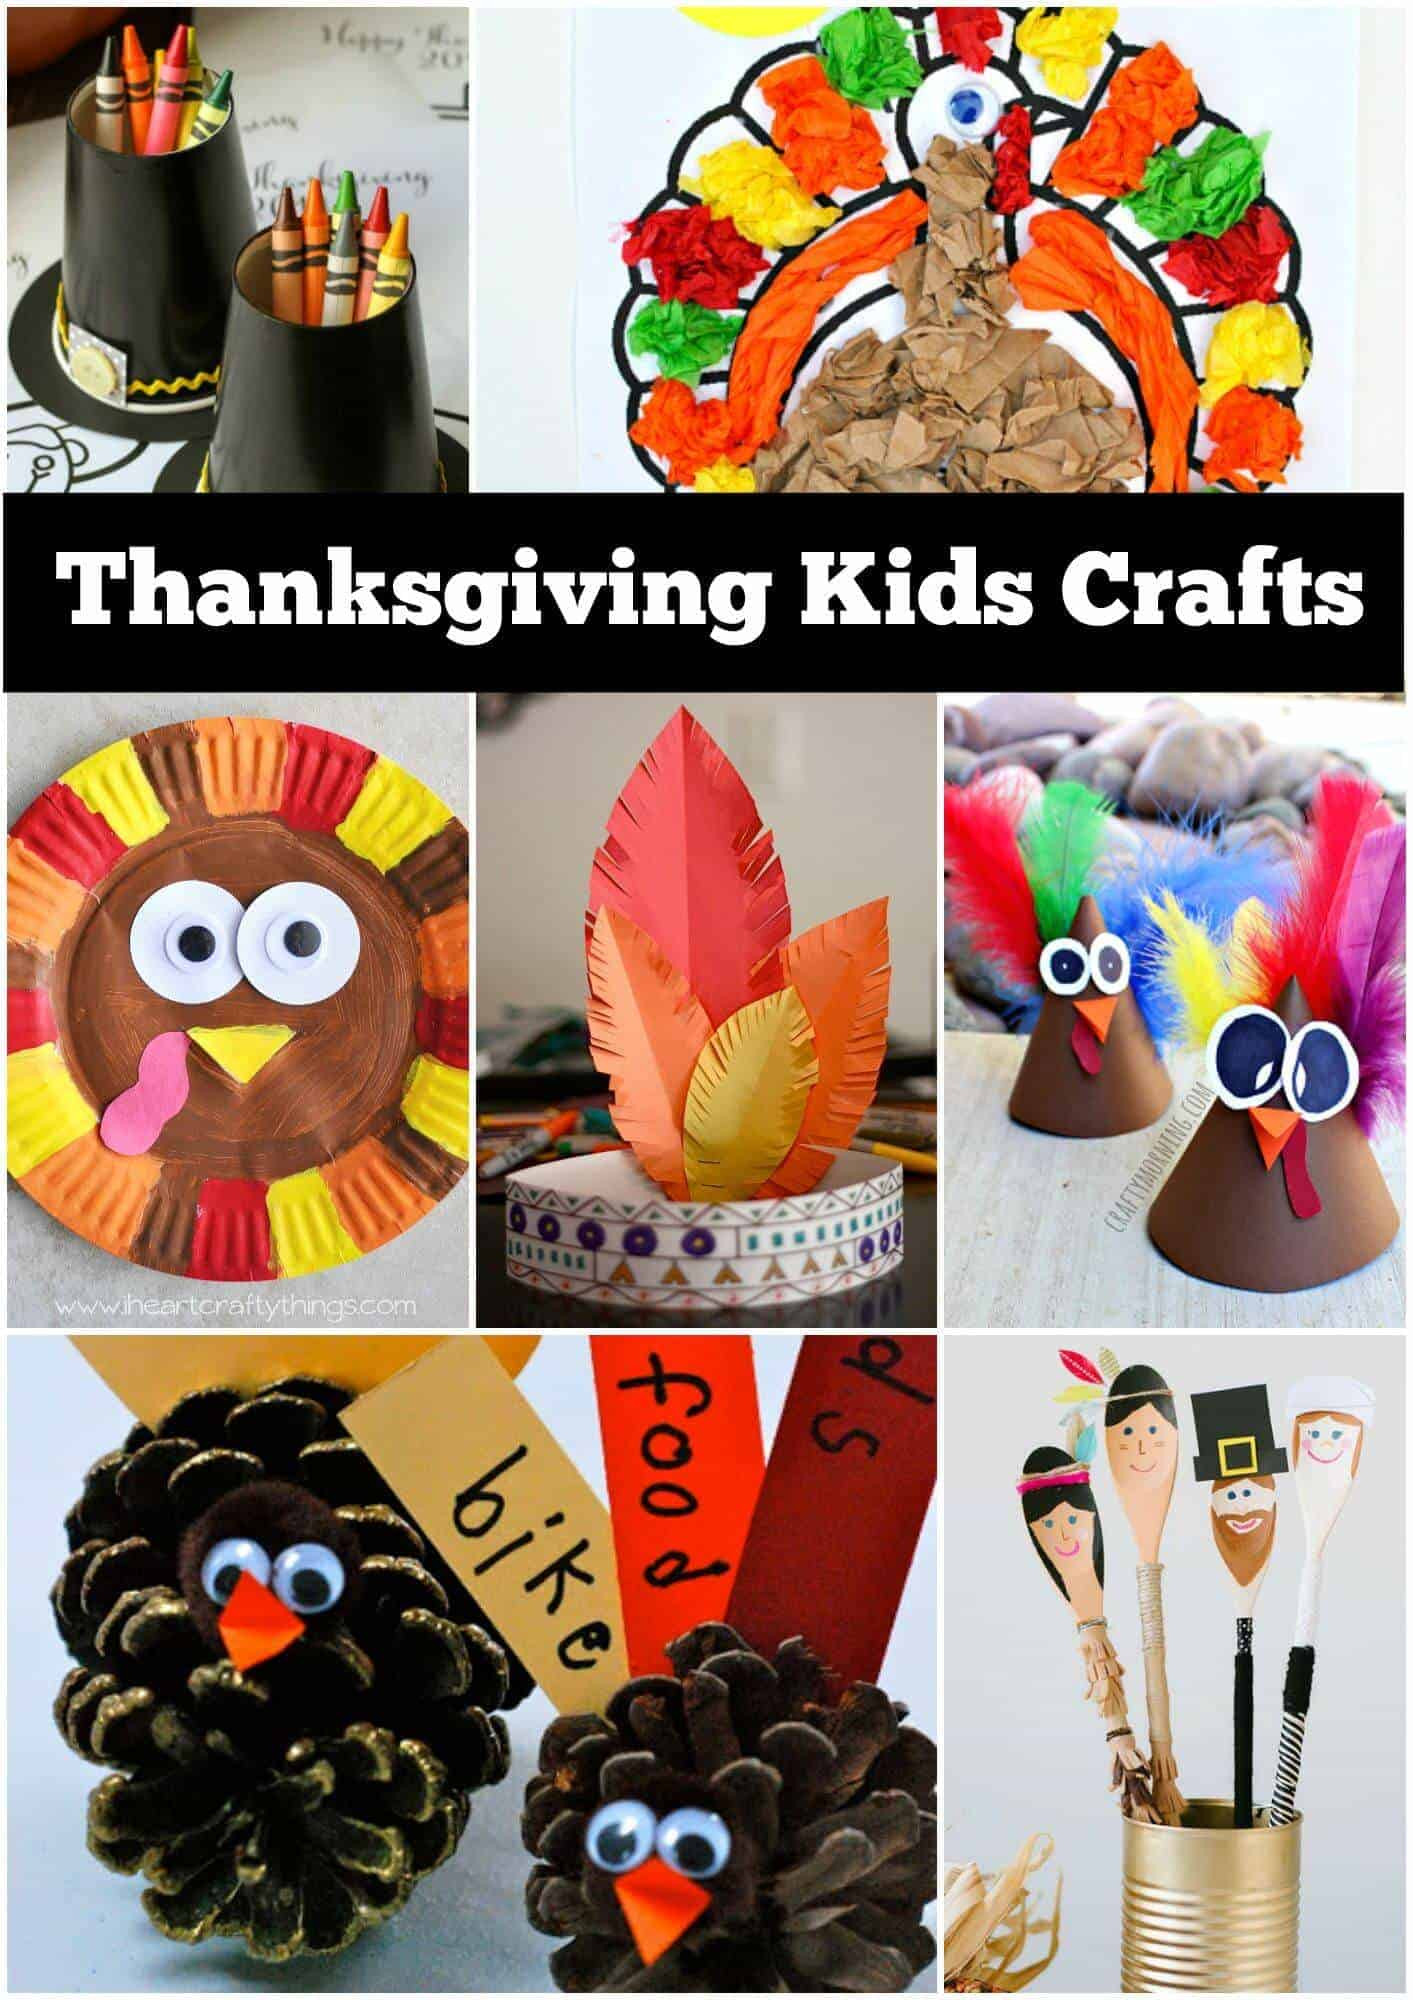 Thanksgiving Turkey Projects  12 Thanksgiving Craft Ideas for kids Page 2 of 2